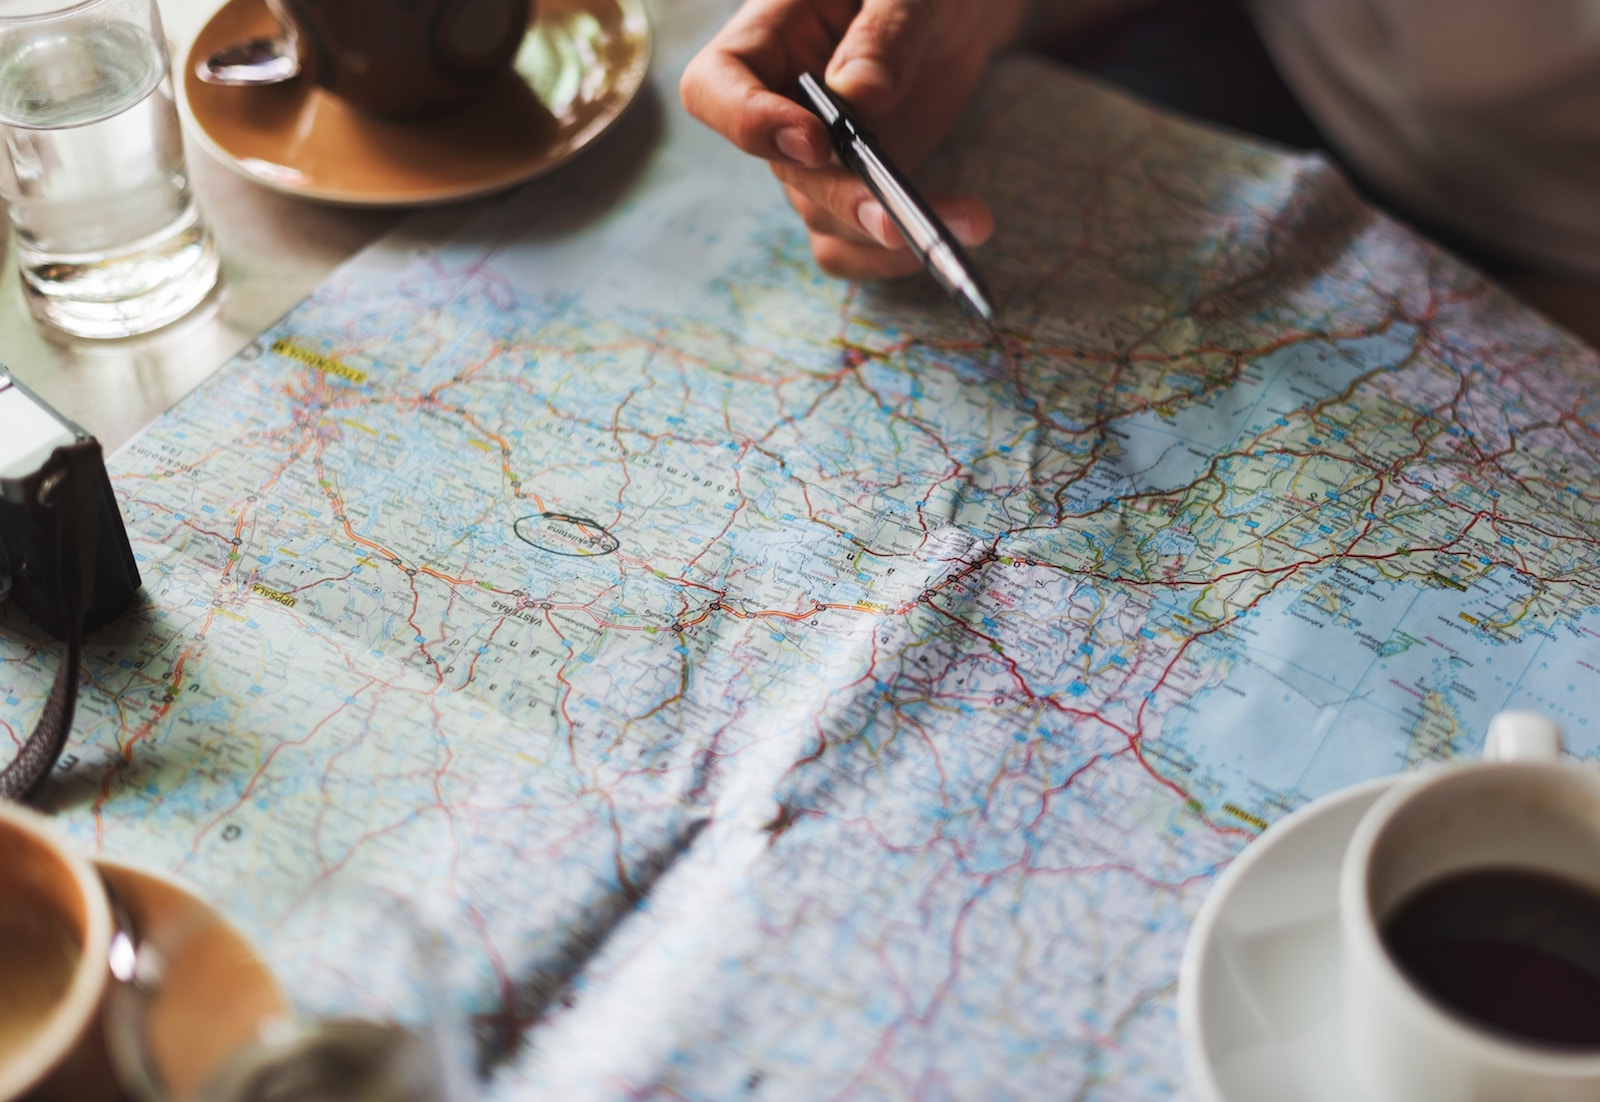 Useful Tips for Preparing to Travel Someplace New